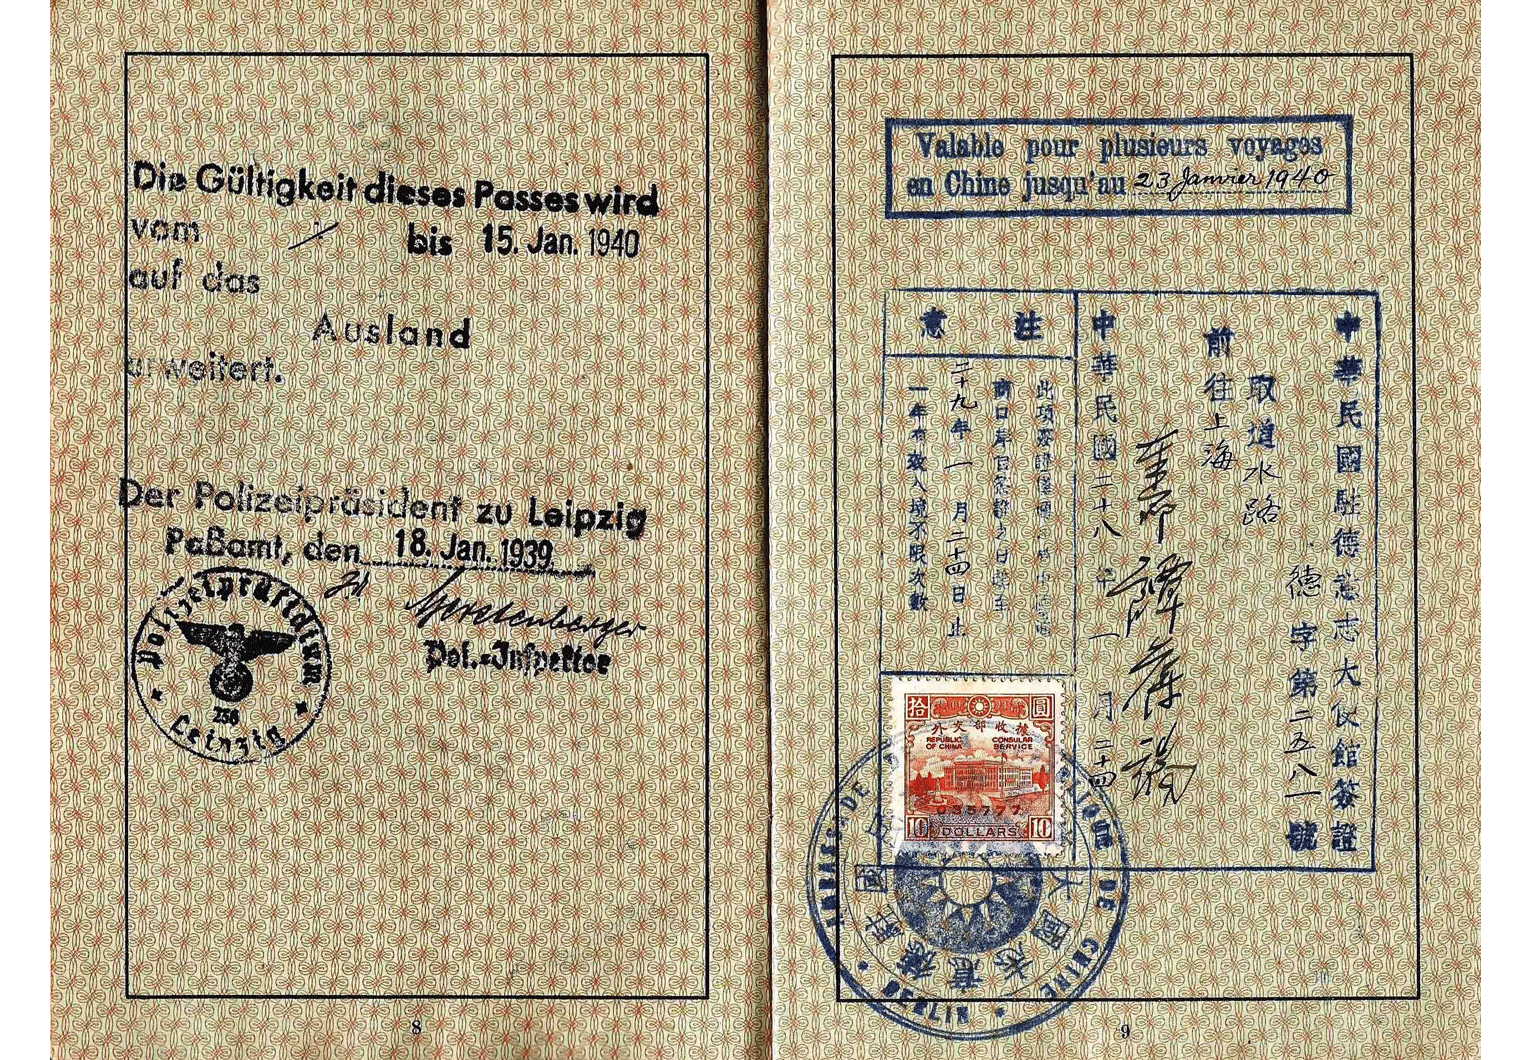 WW2 Jewish passport visa for Shanghai